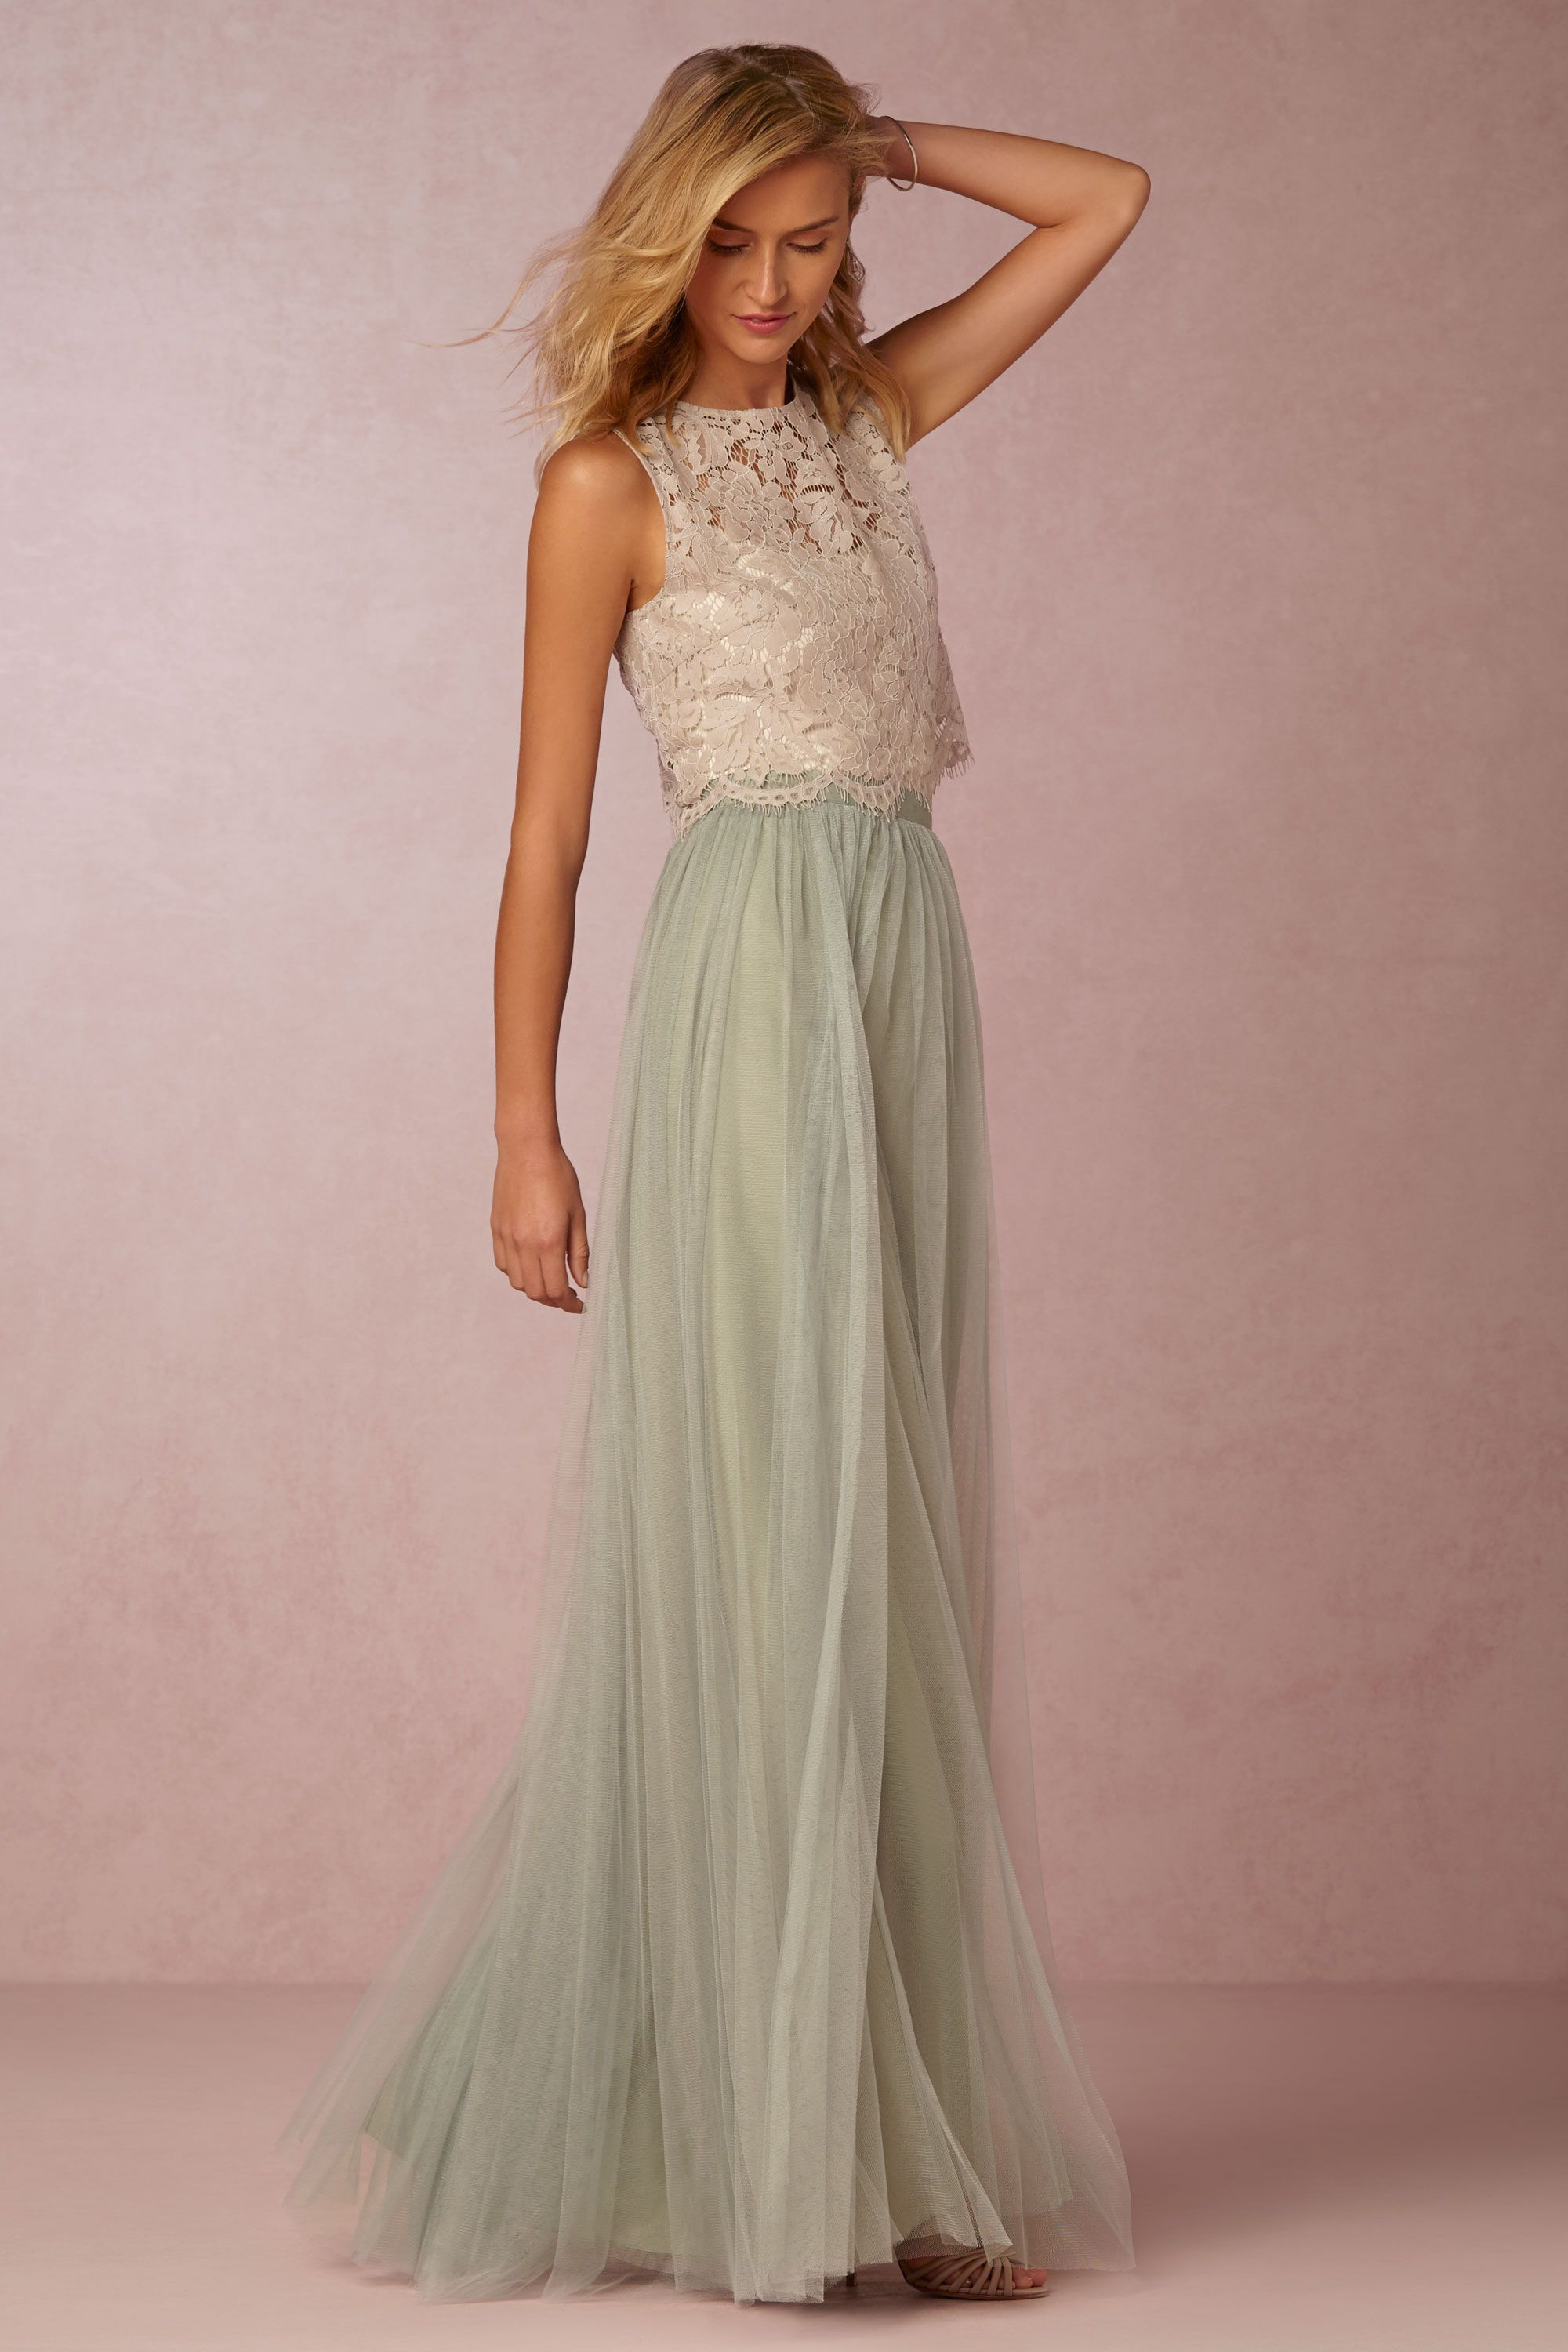 Outfit Hochzeit Gast Kein Kleid S7d1.scene7.com Is Image Bhldn 20150929-cleolouiseseaset_a